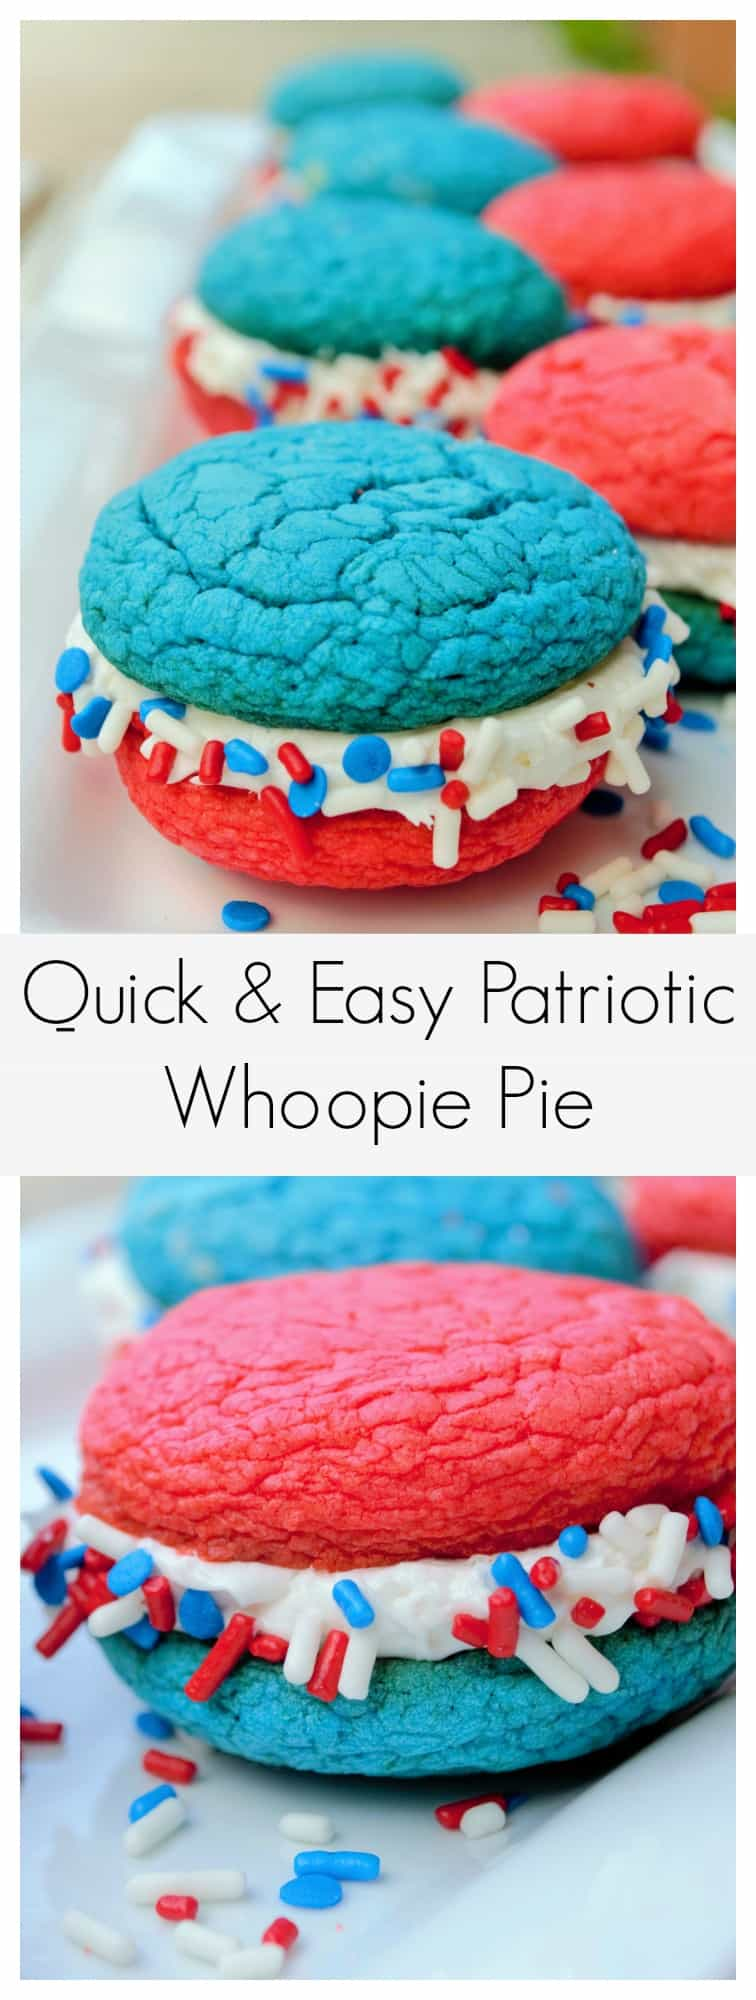 Red White and Blue Whoopie Pie | This easy and amazing Red White and Blue Whoopie Pie recipe is fast to make, delicious to eat and perfect for all of your Memorial Day and Fourth of July festivities!! | Pack Momma | https://www.packmomma.com